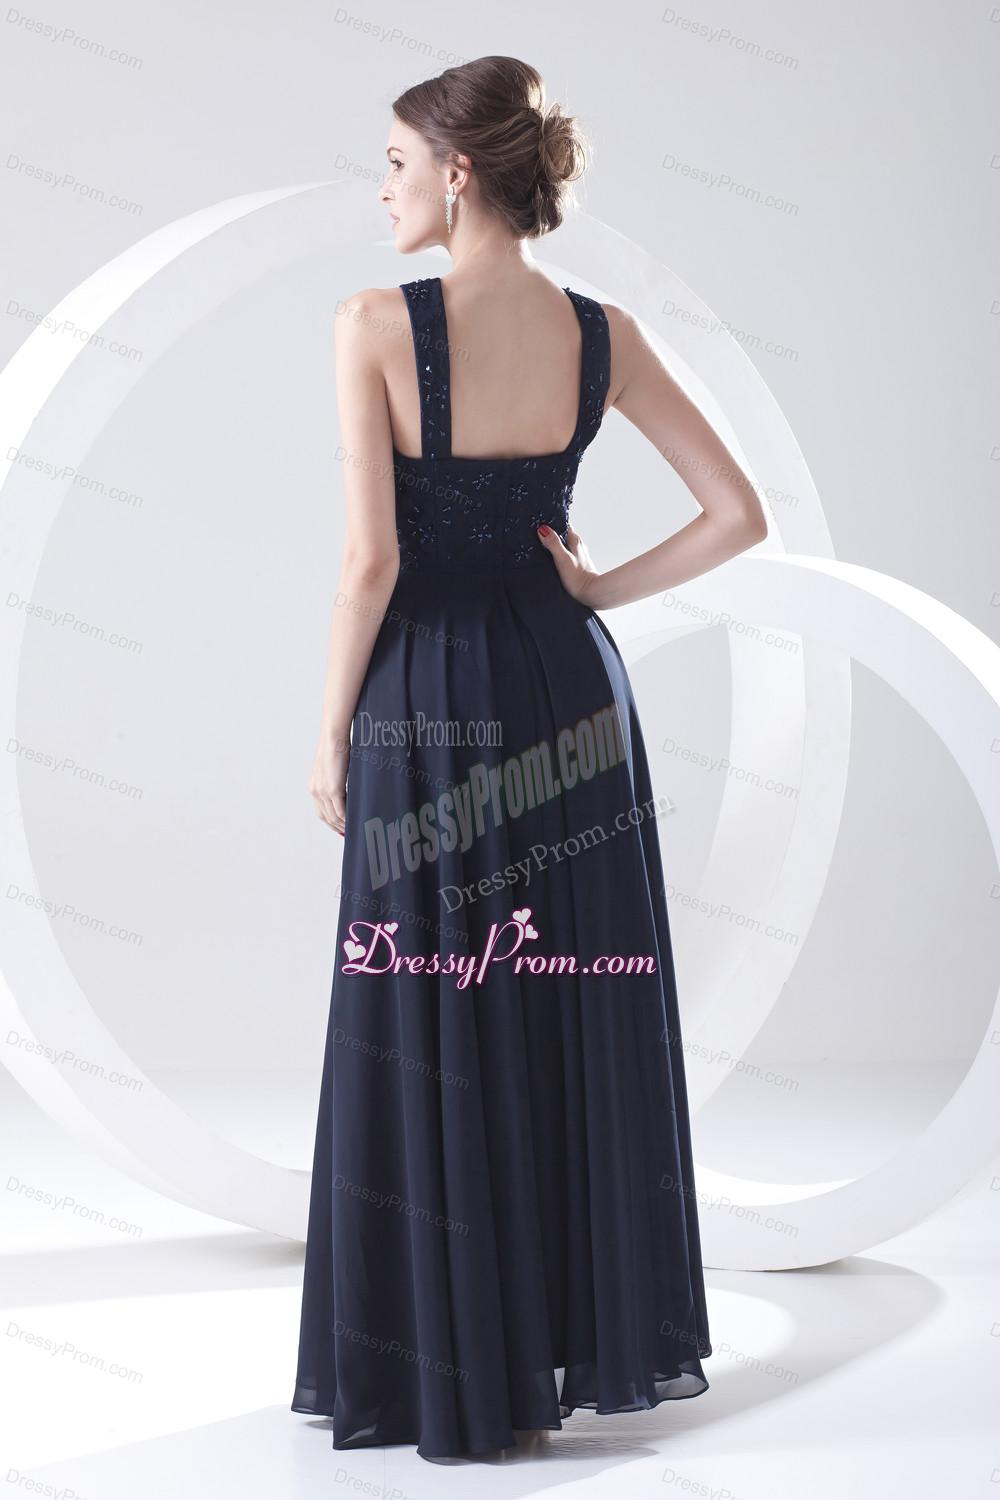 2014 navy blue prom dress with lace bateau black empire